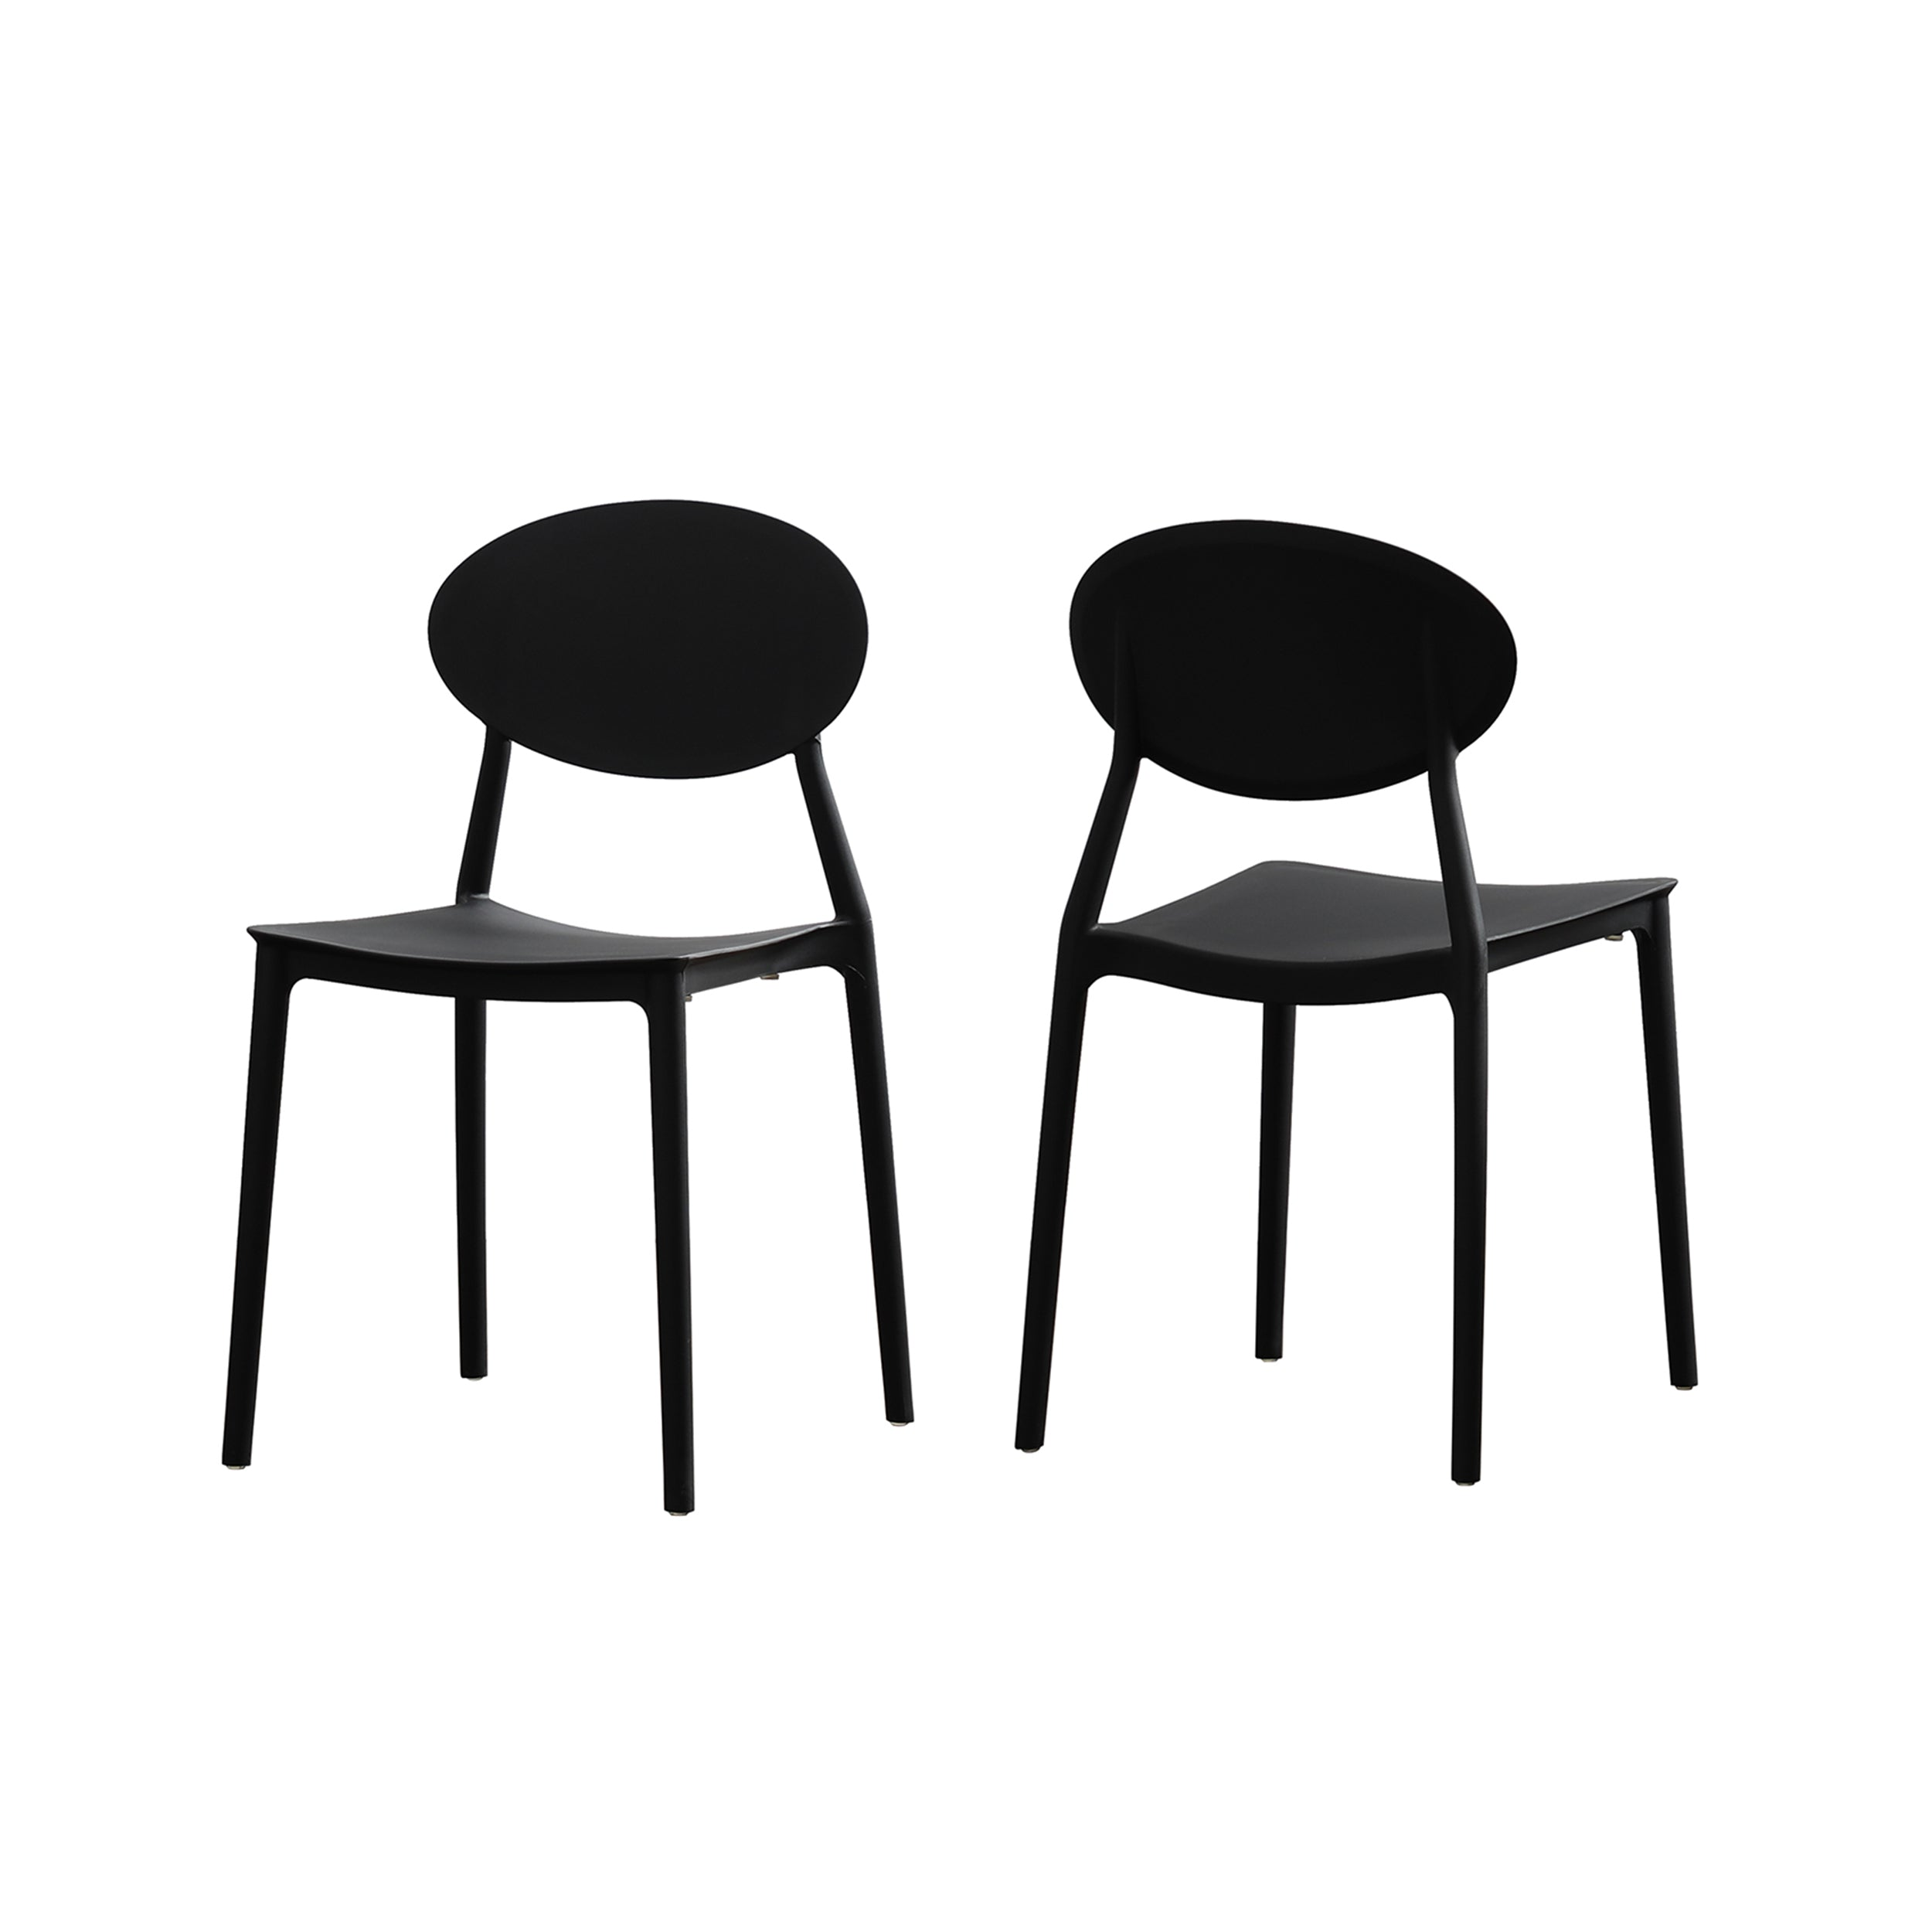 Ali Indoor Plastic Chair Set of 2 Black